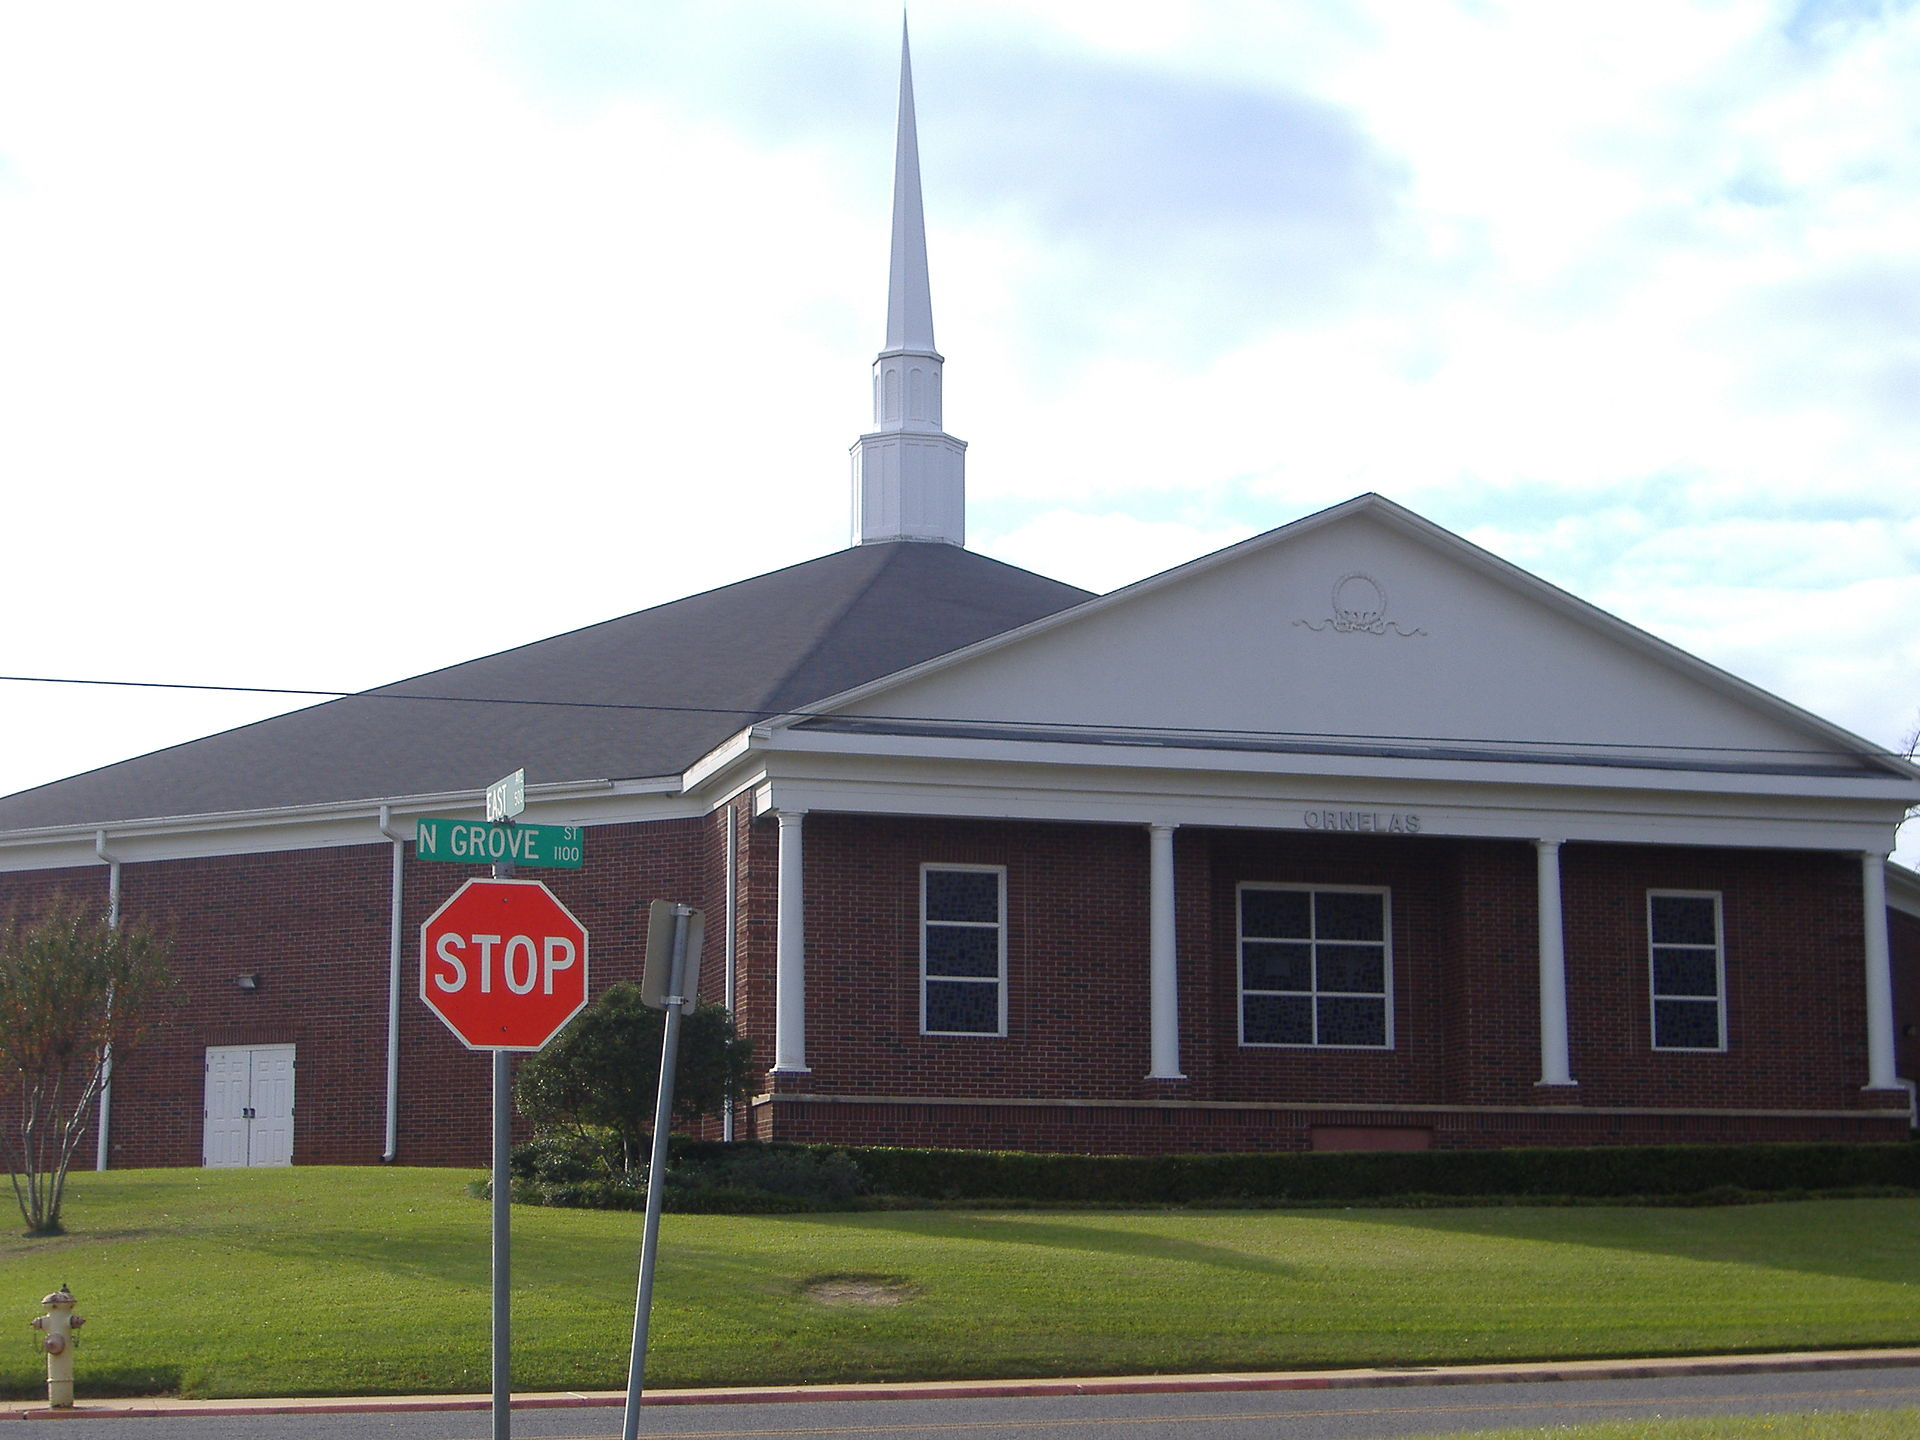 As ETBU is a Christ-centered institution, chapel services are regularly held at Ornelas Spiritual Life Center.